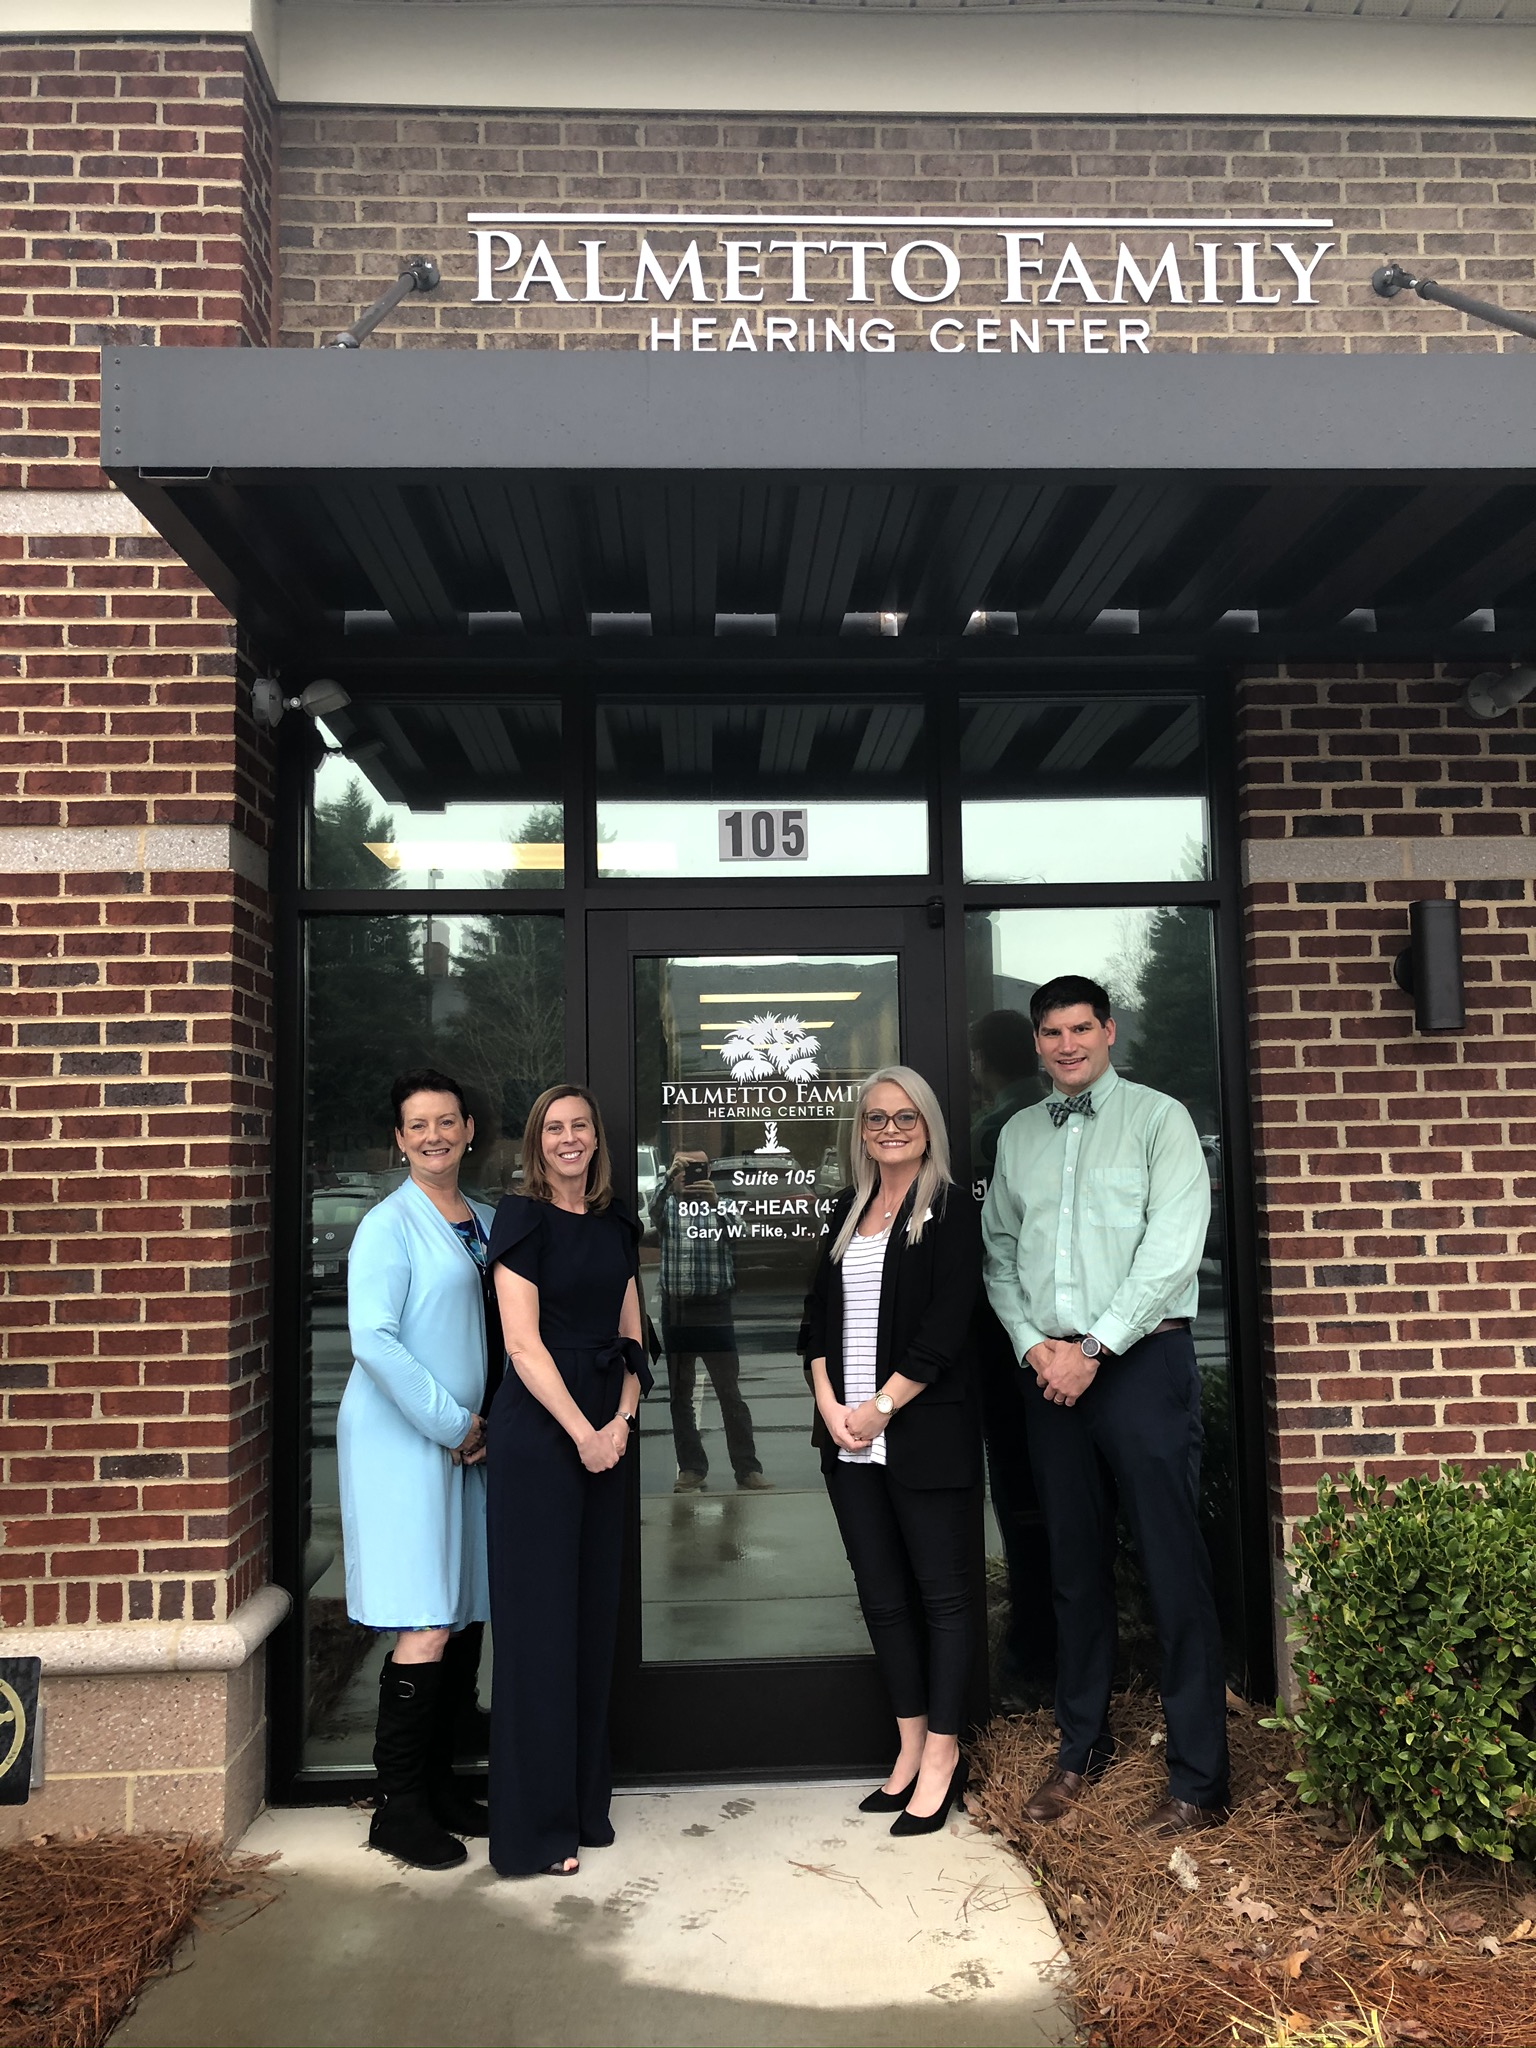 Our Doctors and Team Members Welcome You to Palmetto Family Hearing Center